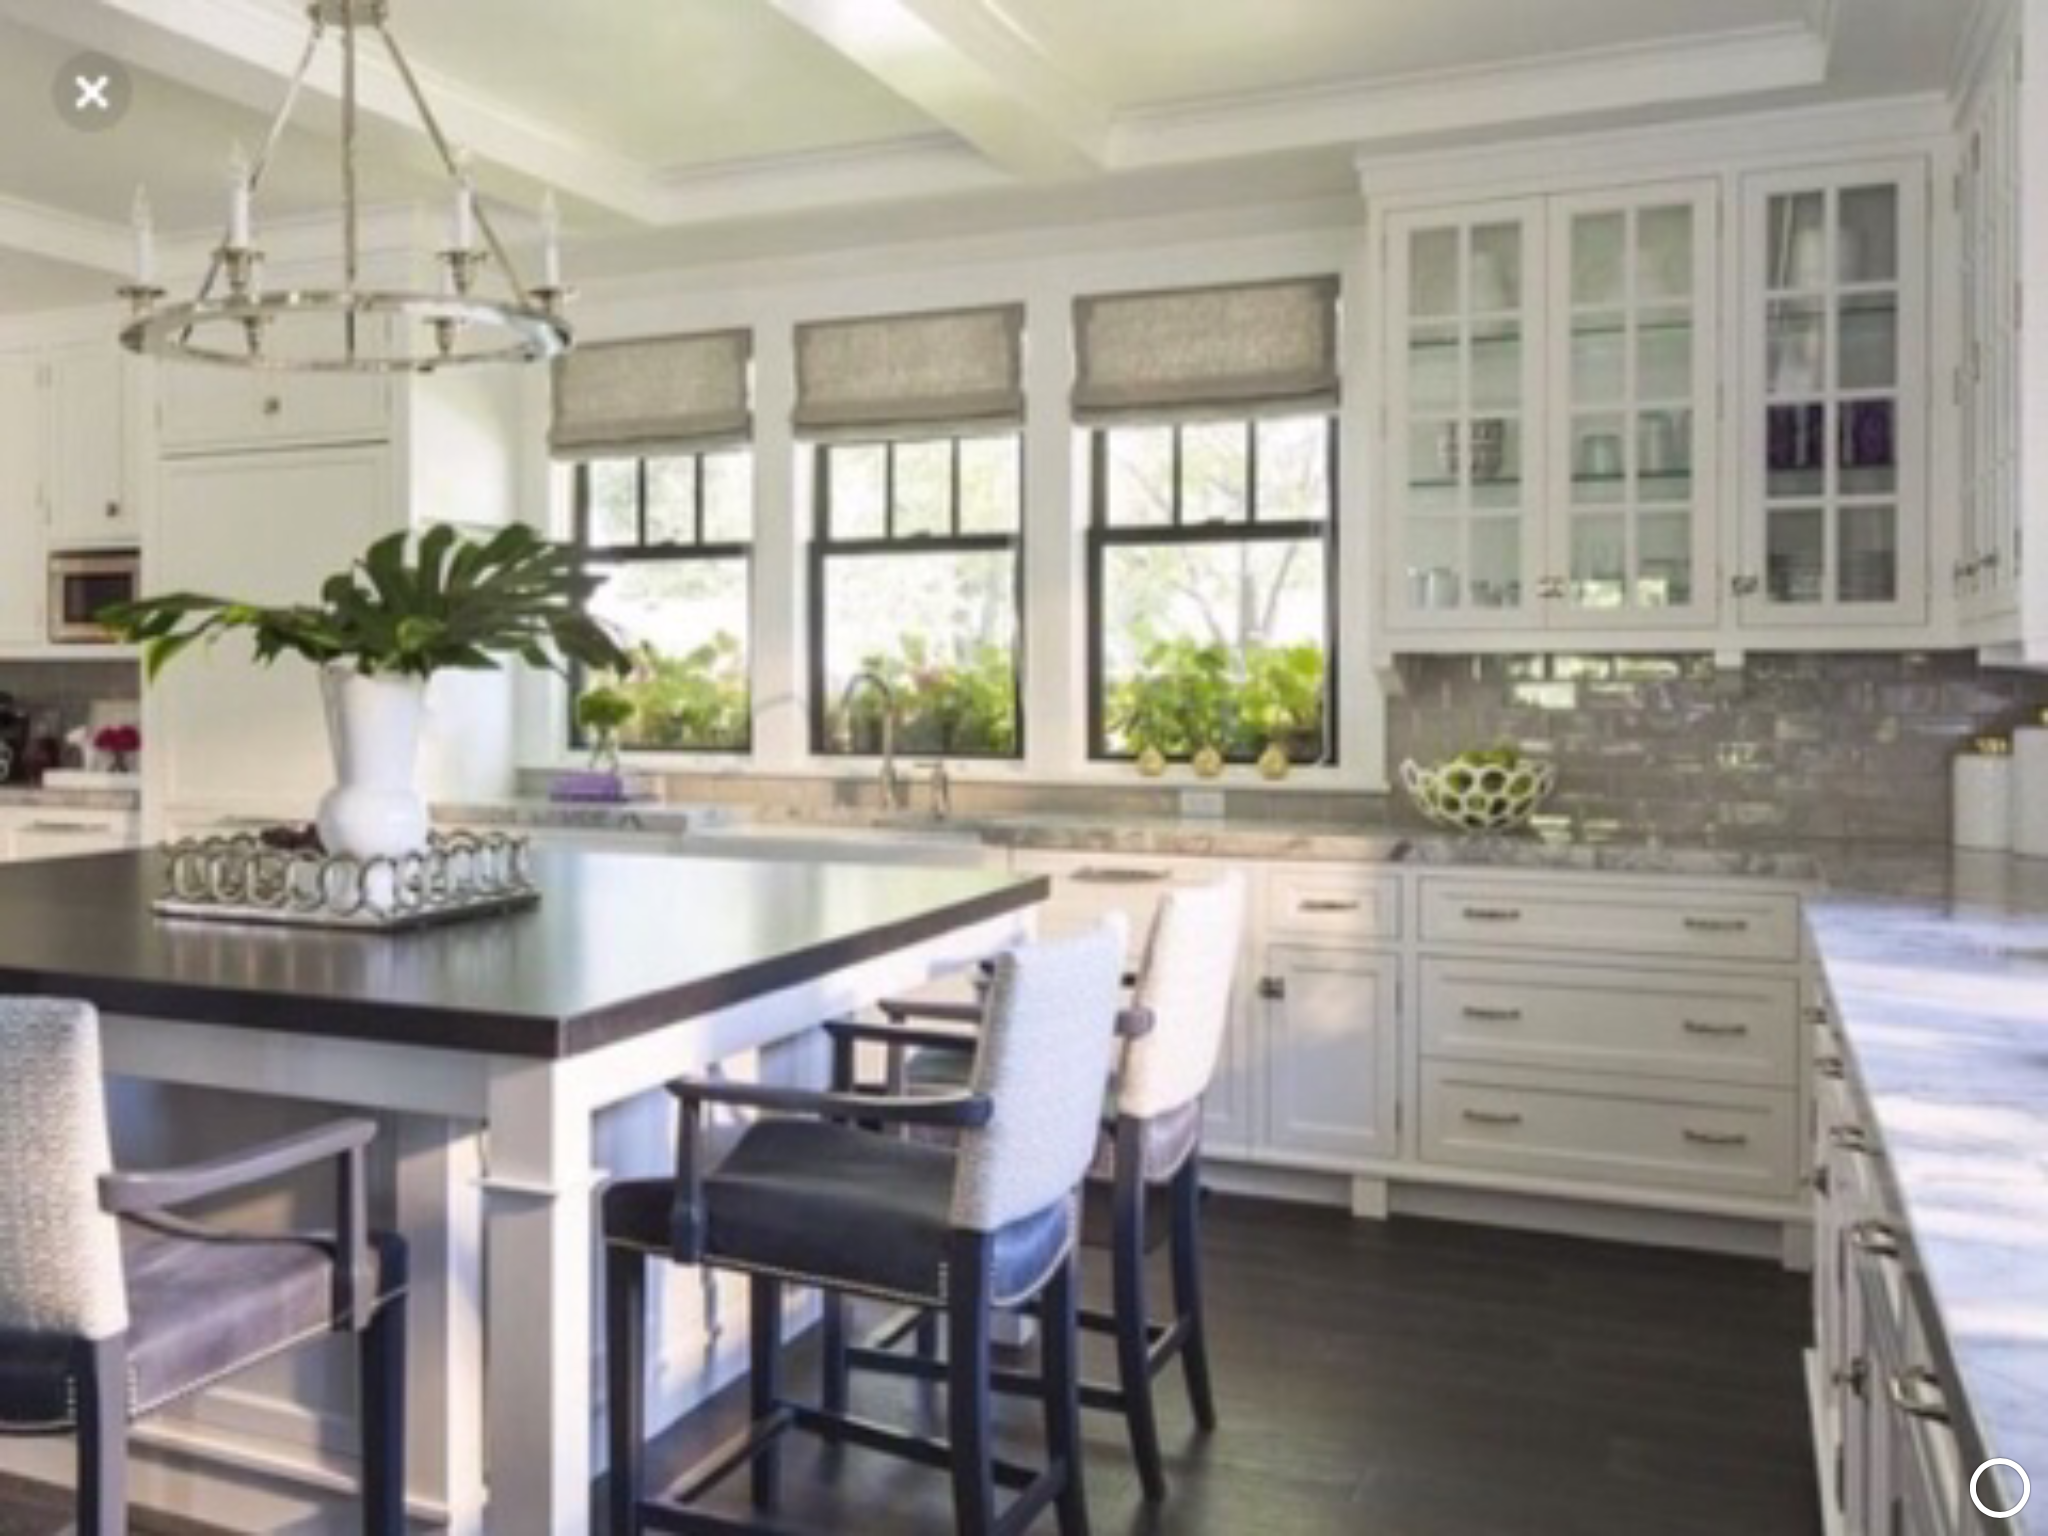 Window Treatments And 2 3 Sided Island Like How The Overhang Is On The Island Ls Hamptons Kitchen Contemporary Kitchen Kitchen Interior